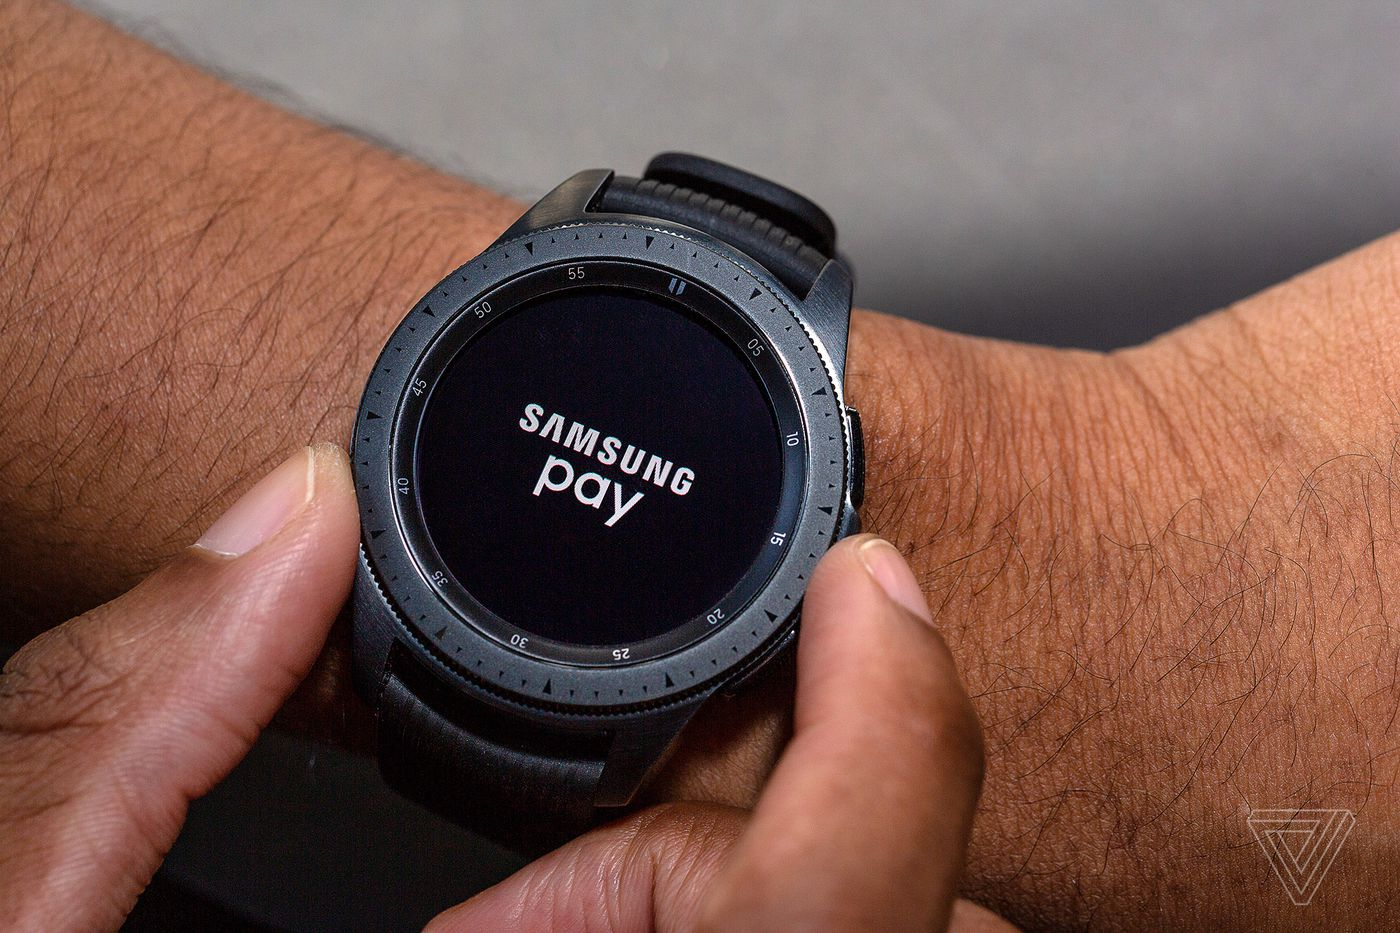 Samsung Galaxy Watch review: iteration over innovation - The Verge